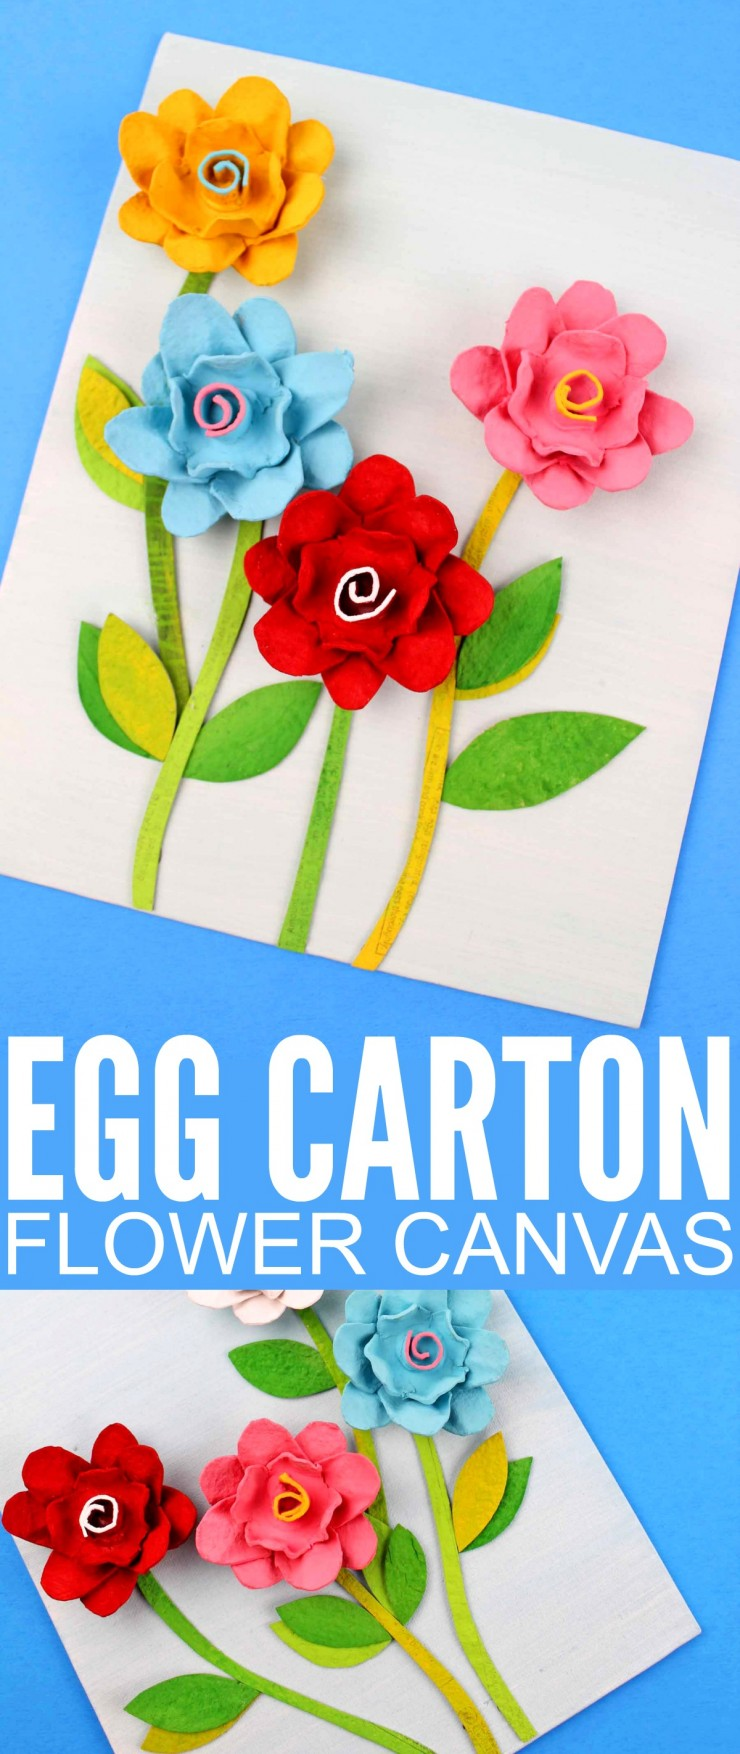 This Egg Carton Flower Canvas is a fun craft for kids that they can gift to mom for mother's day! It is easy to make and allows kids to get really creative with recycled materials!